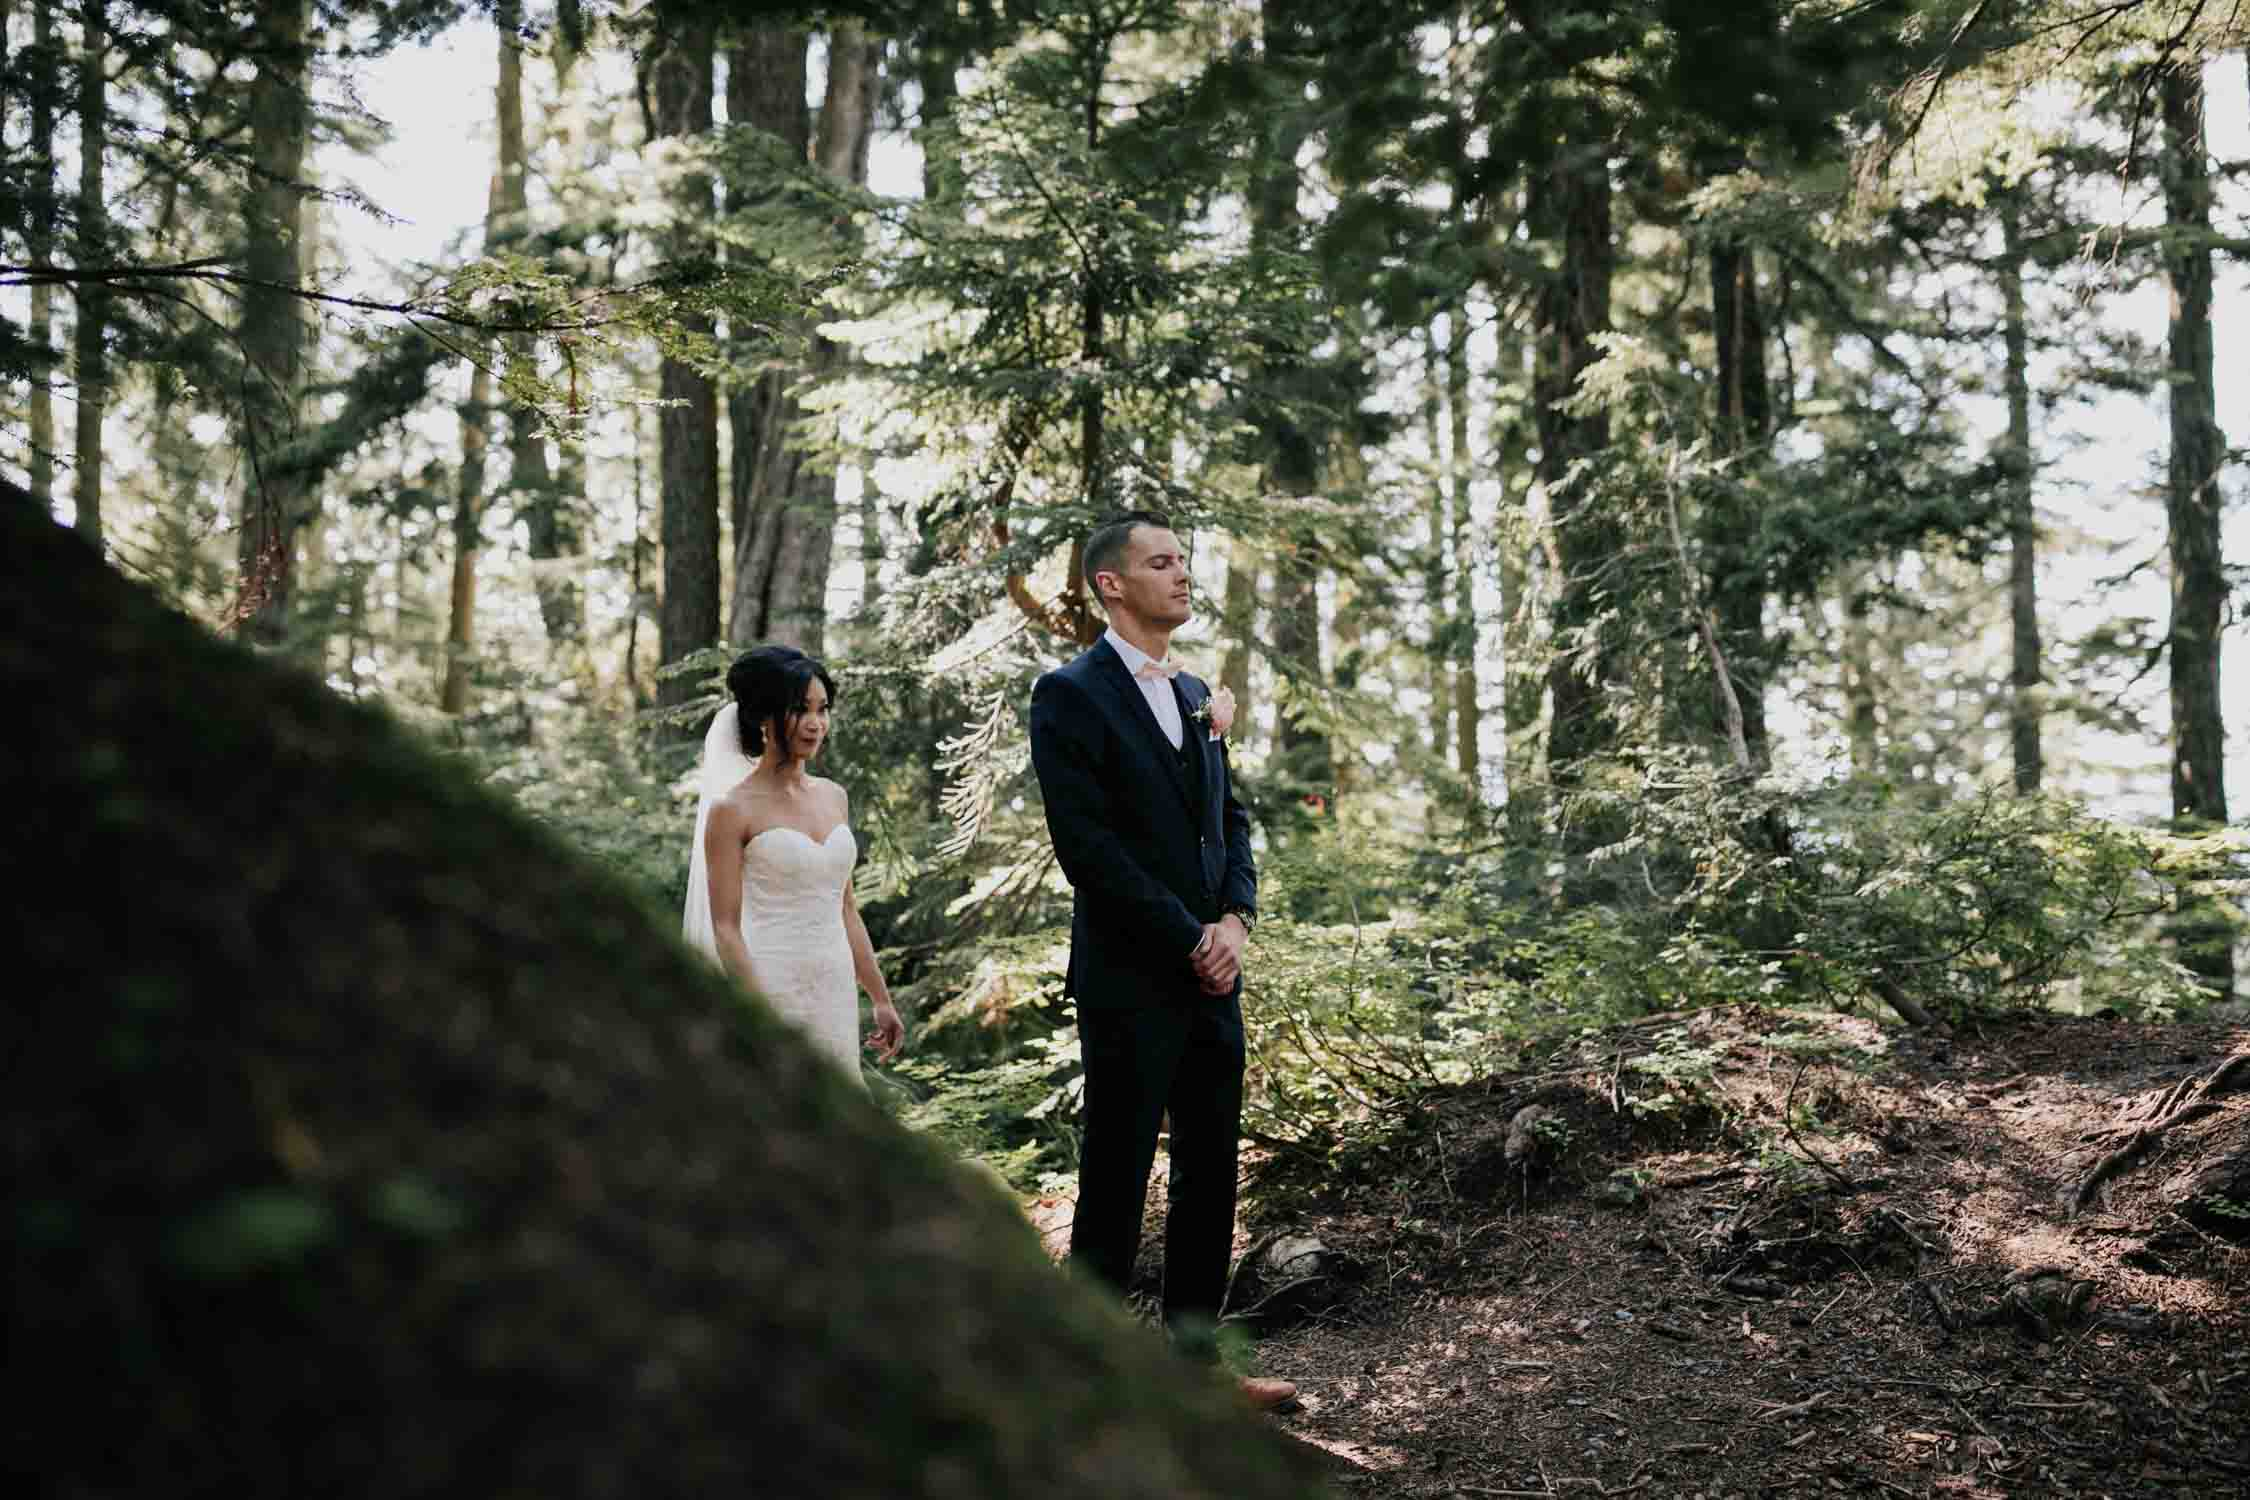 Emotional Moment Groom Waits For Bride First Look Grouse Mountain